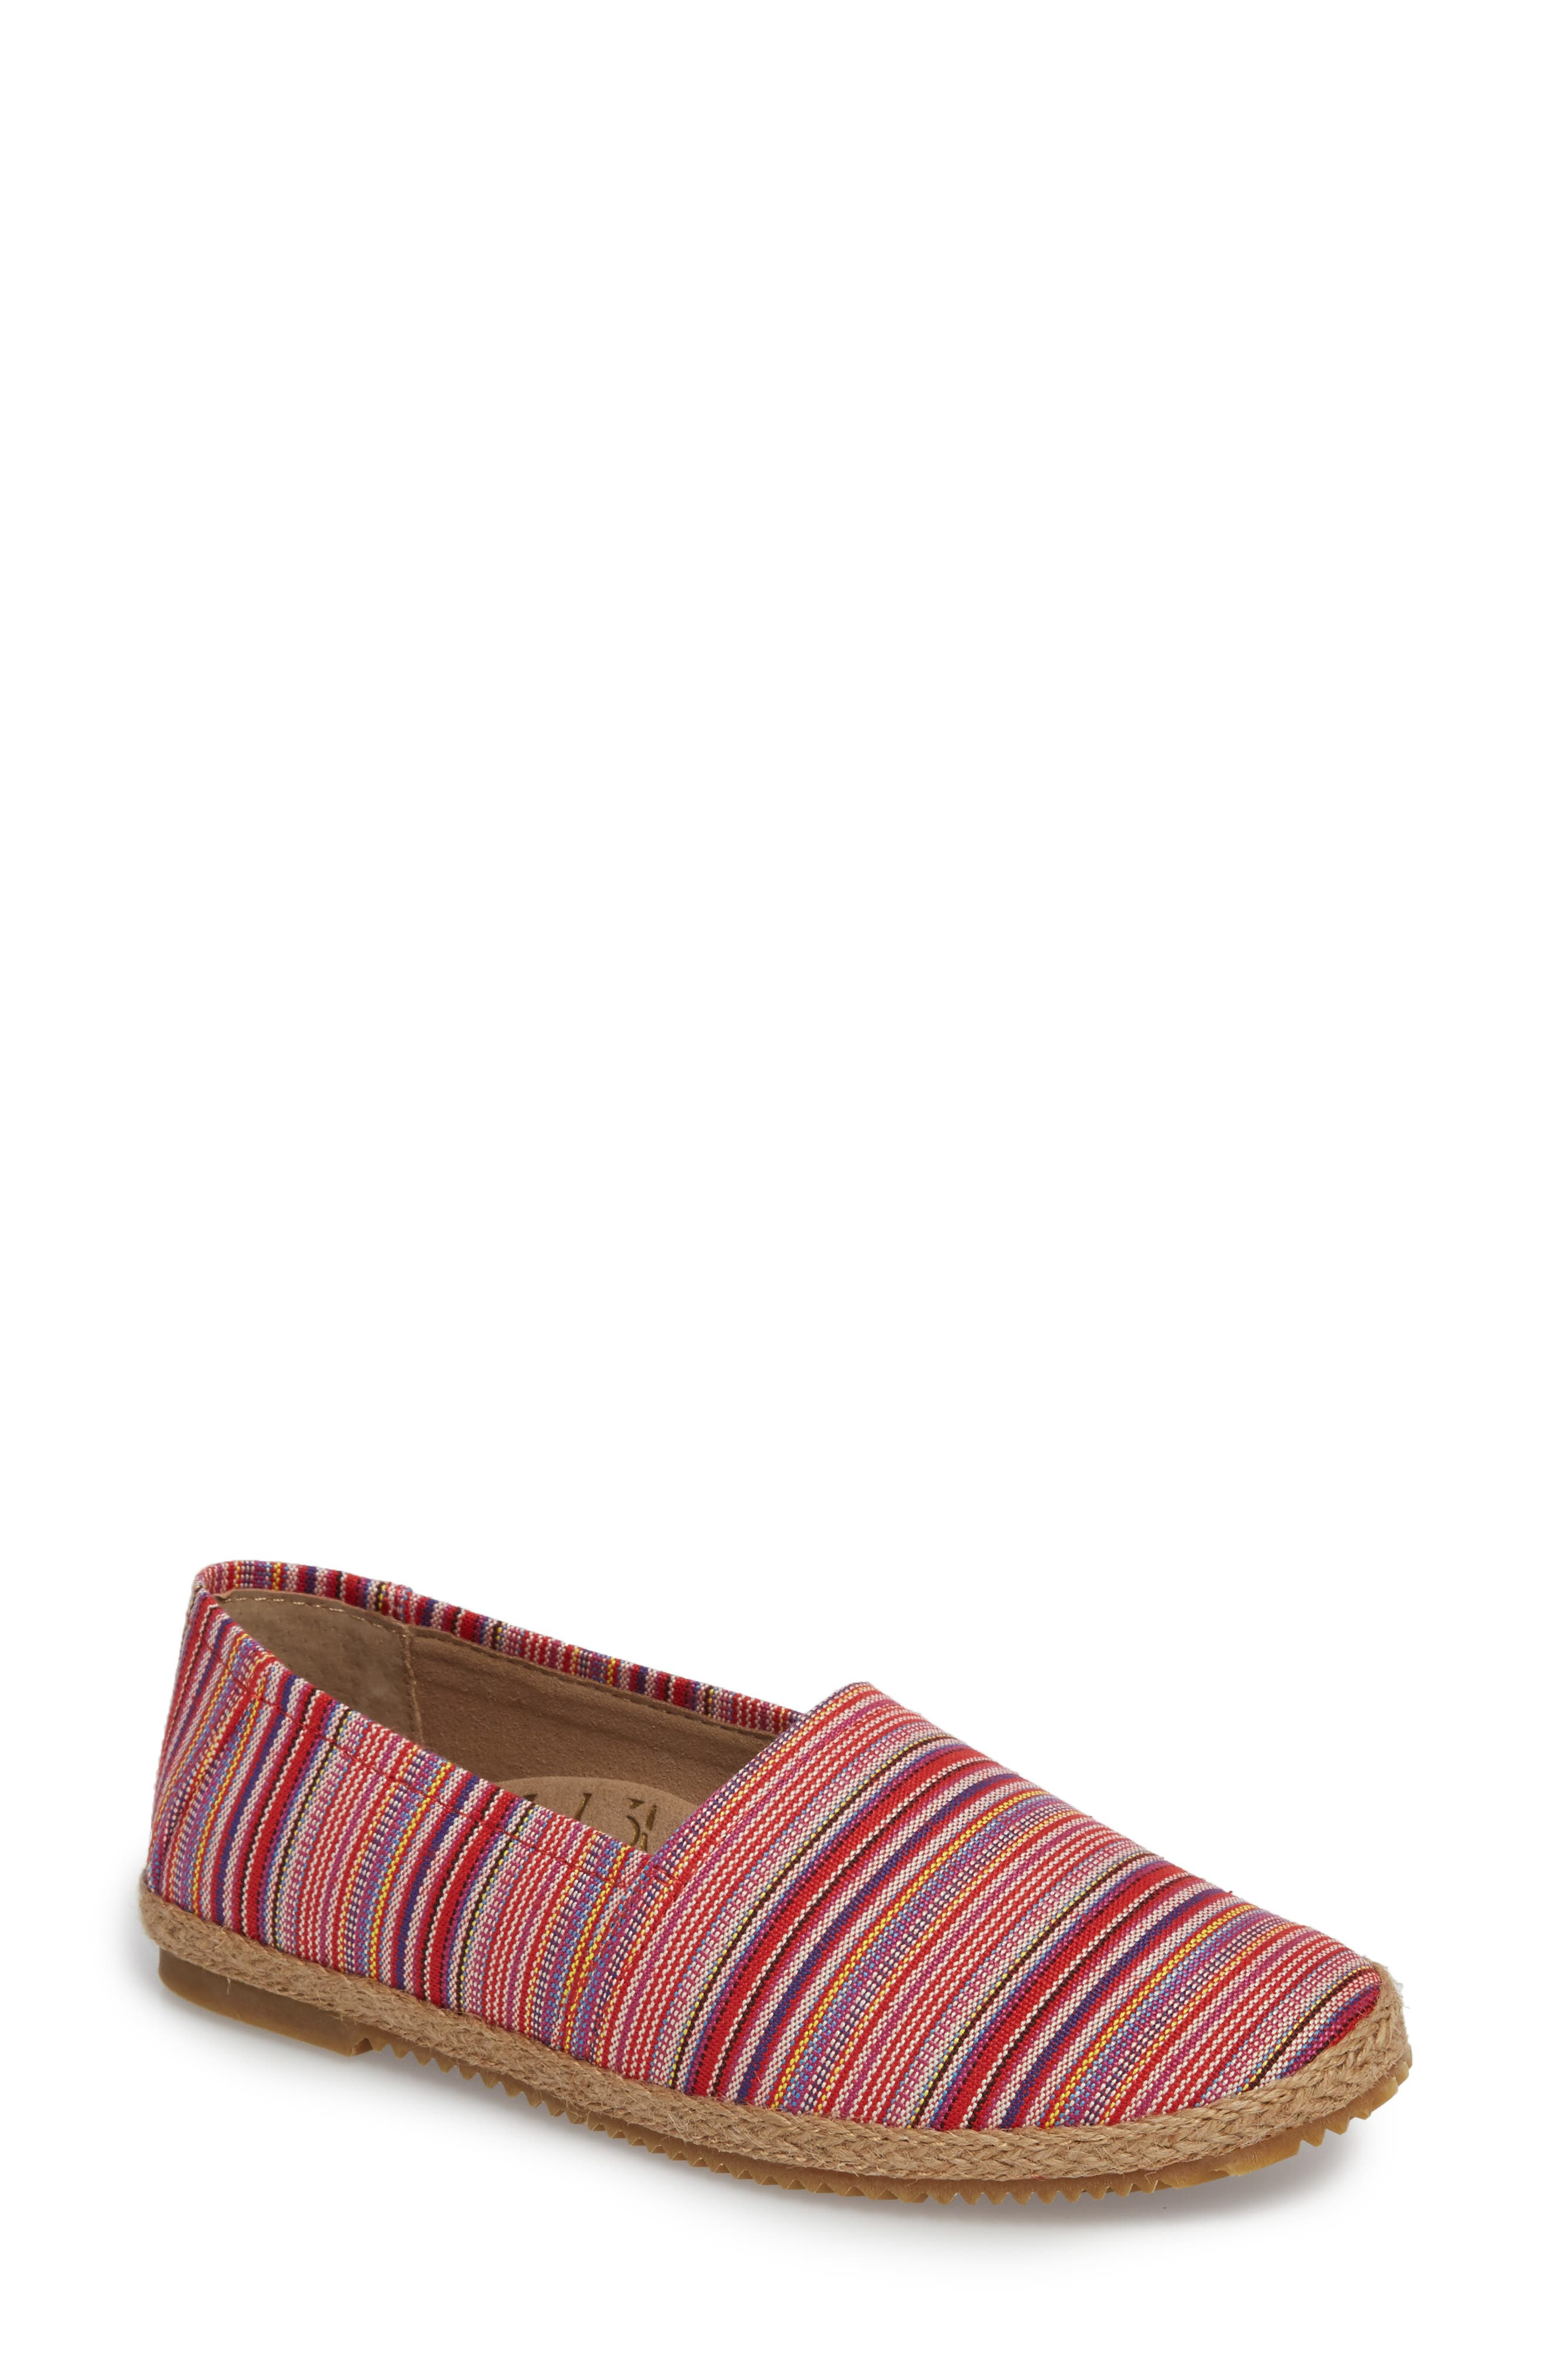 Kylie Slip-On,                         Main,                         color, Pink Stripe Fabric